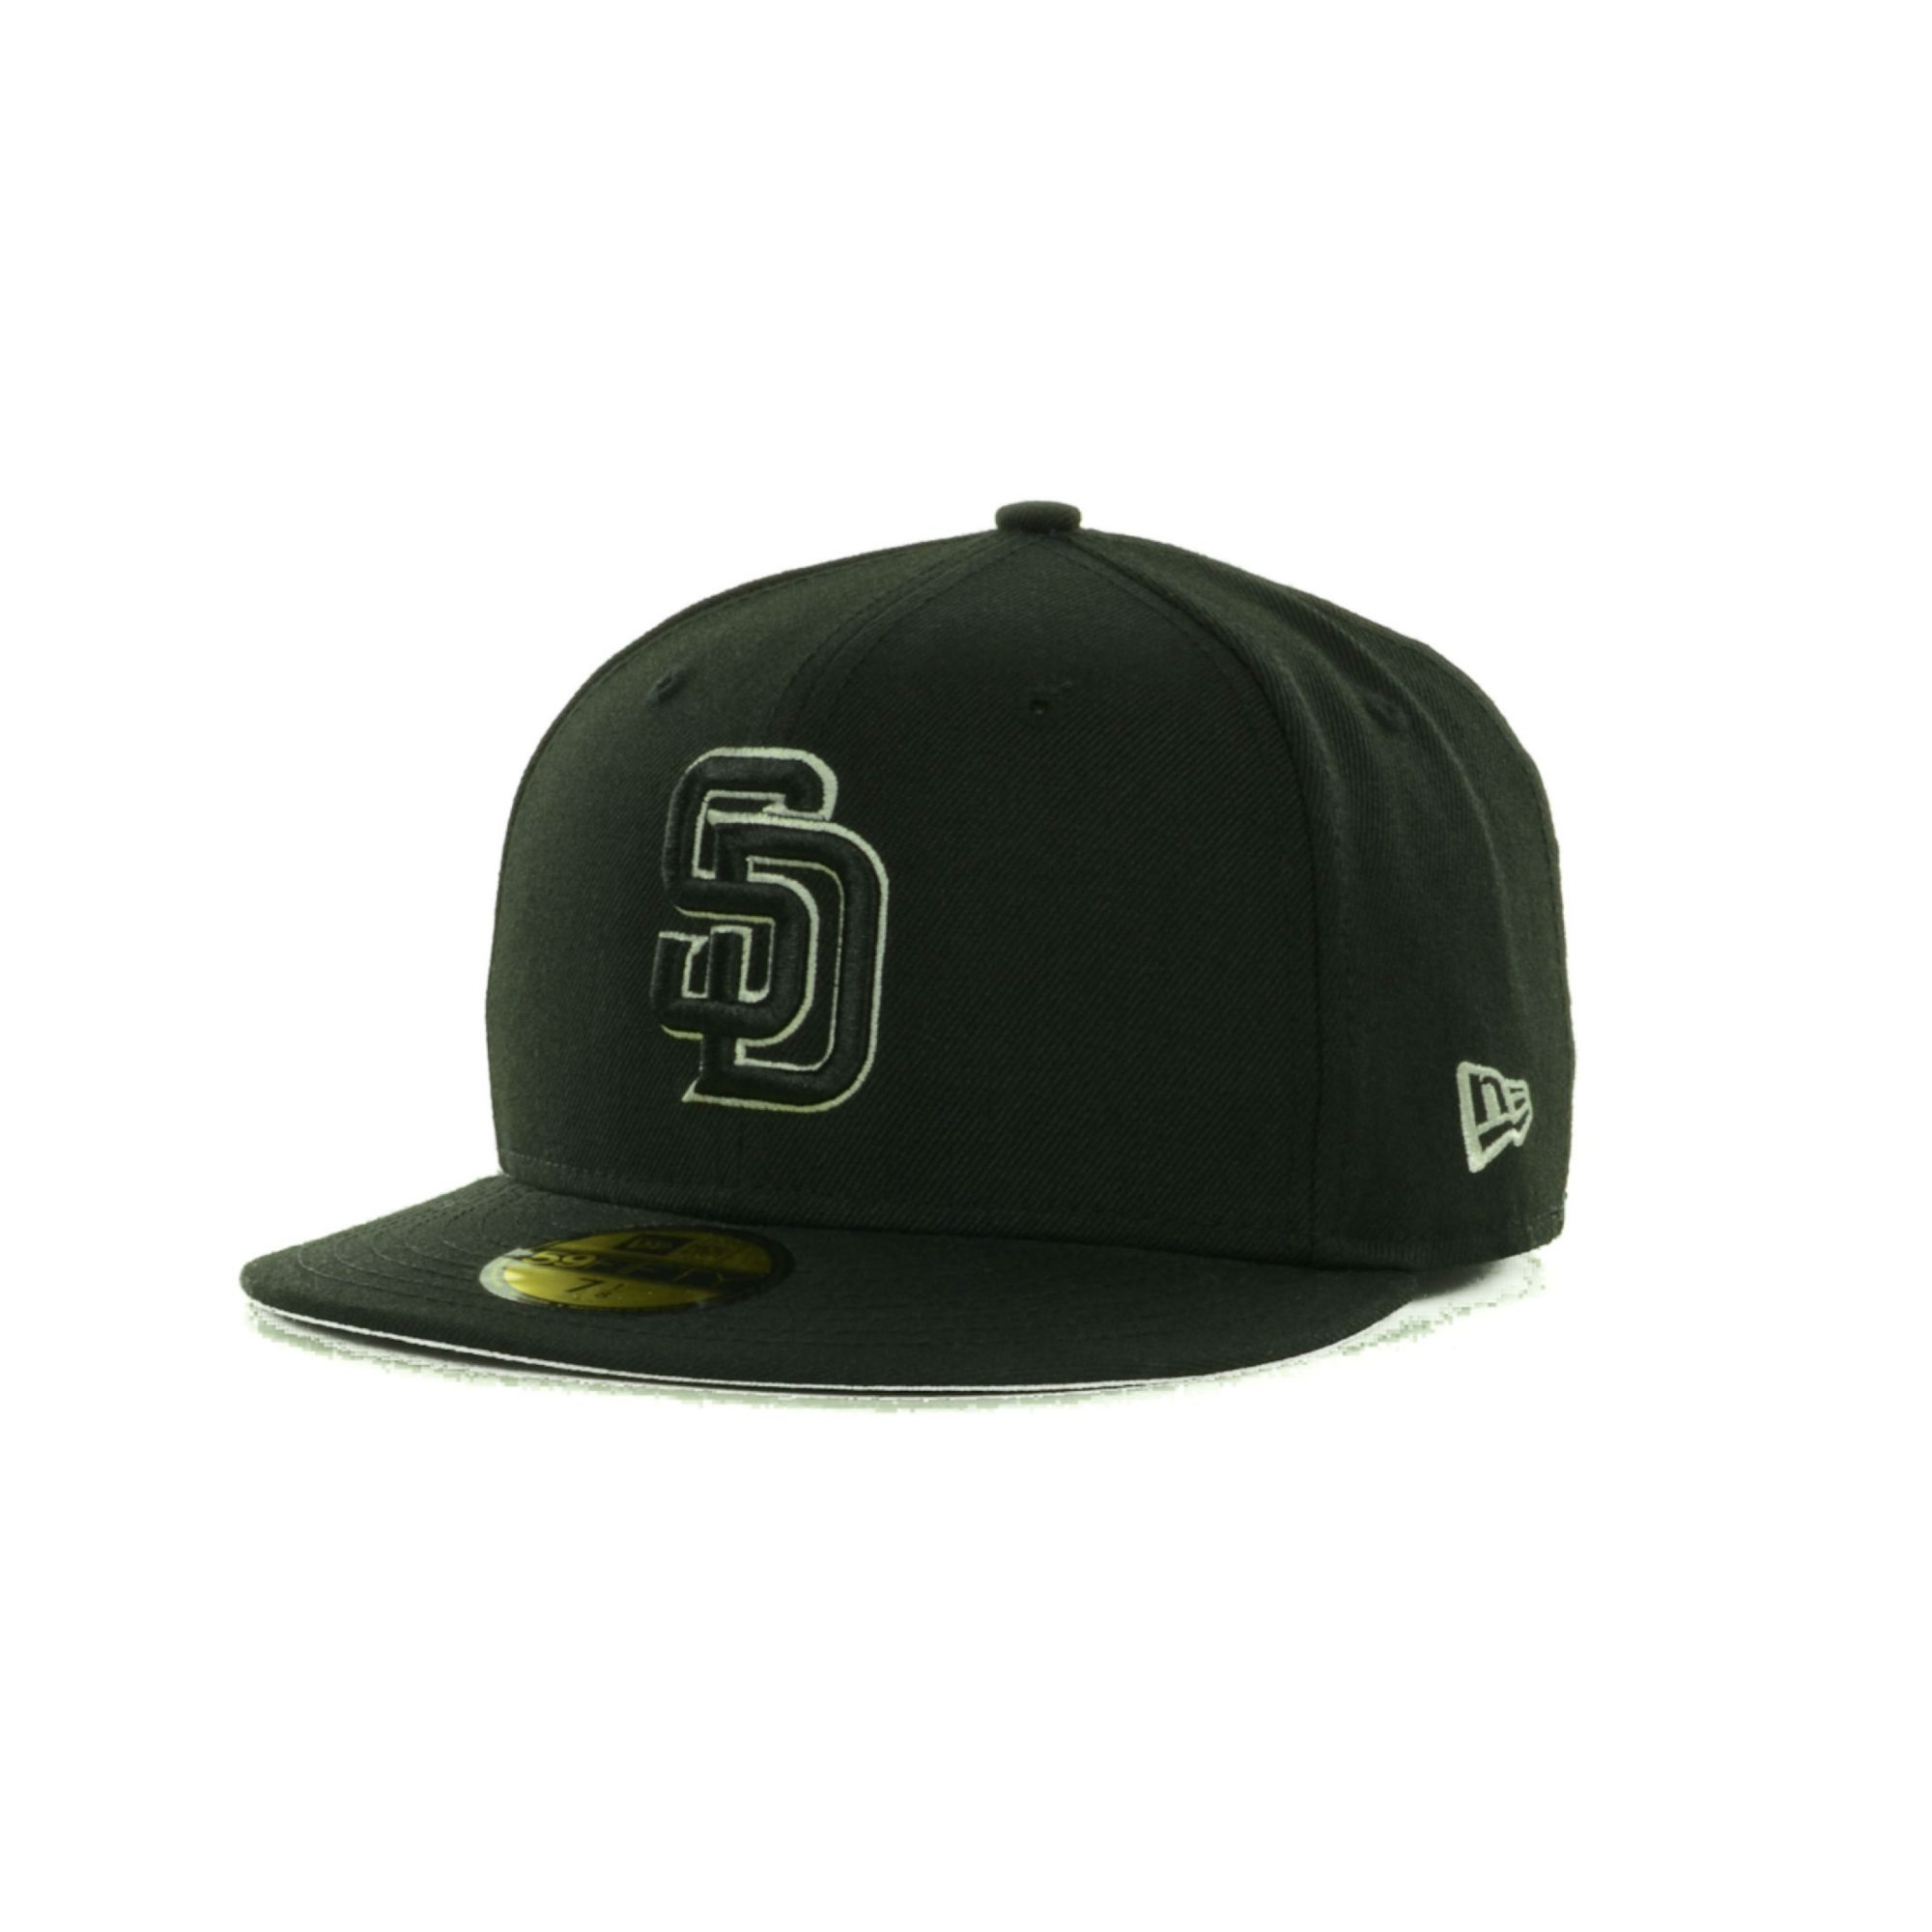 separation shoes 64bf8 87e70 ... dub new era 20685647 red cap 2806d f60c5  hot ktz san diego padres mlb  black on color 59fifty cap in black for men b4aed